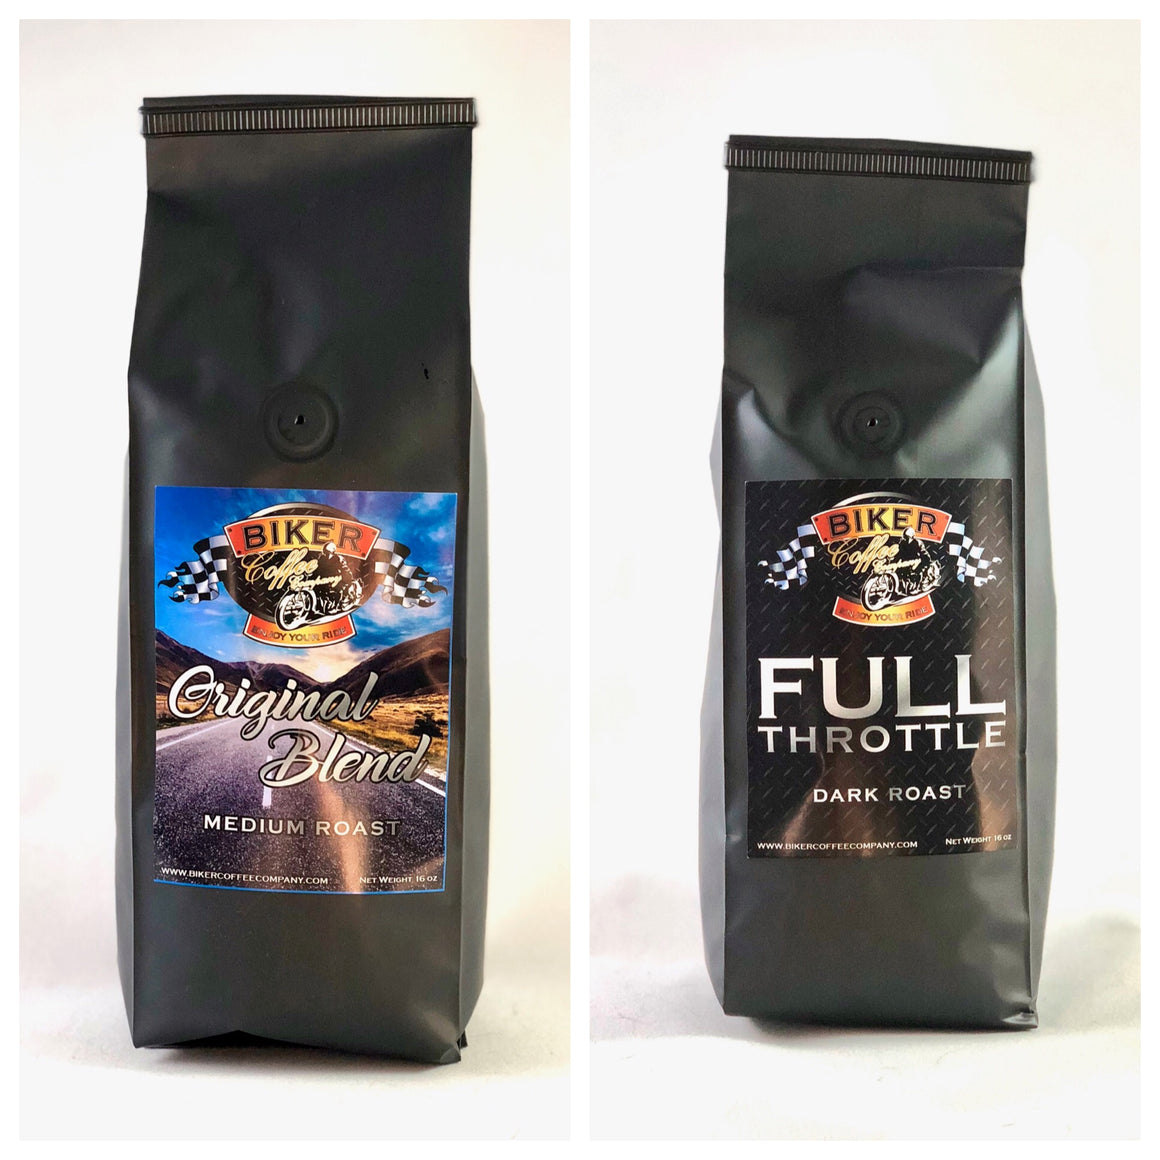 Double sample pack (Original Blend+Full Throttle)